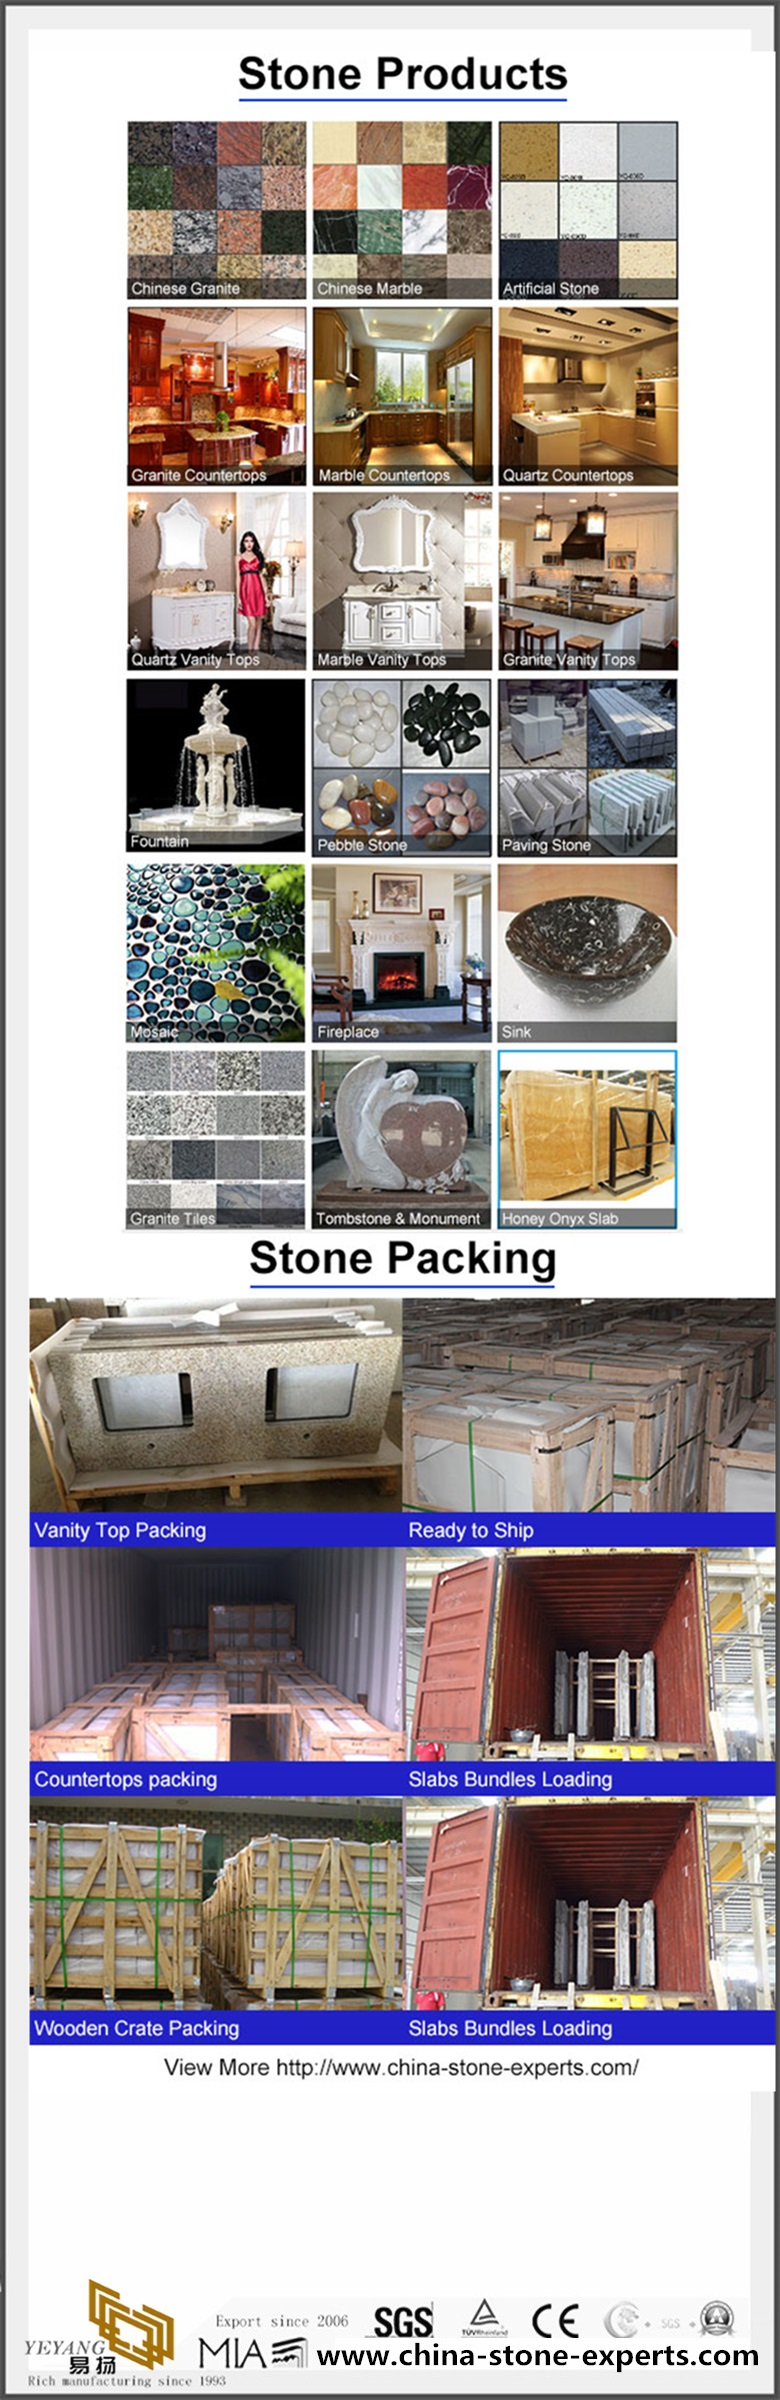 03 Yeyang Stone Products+Packing-2